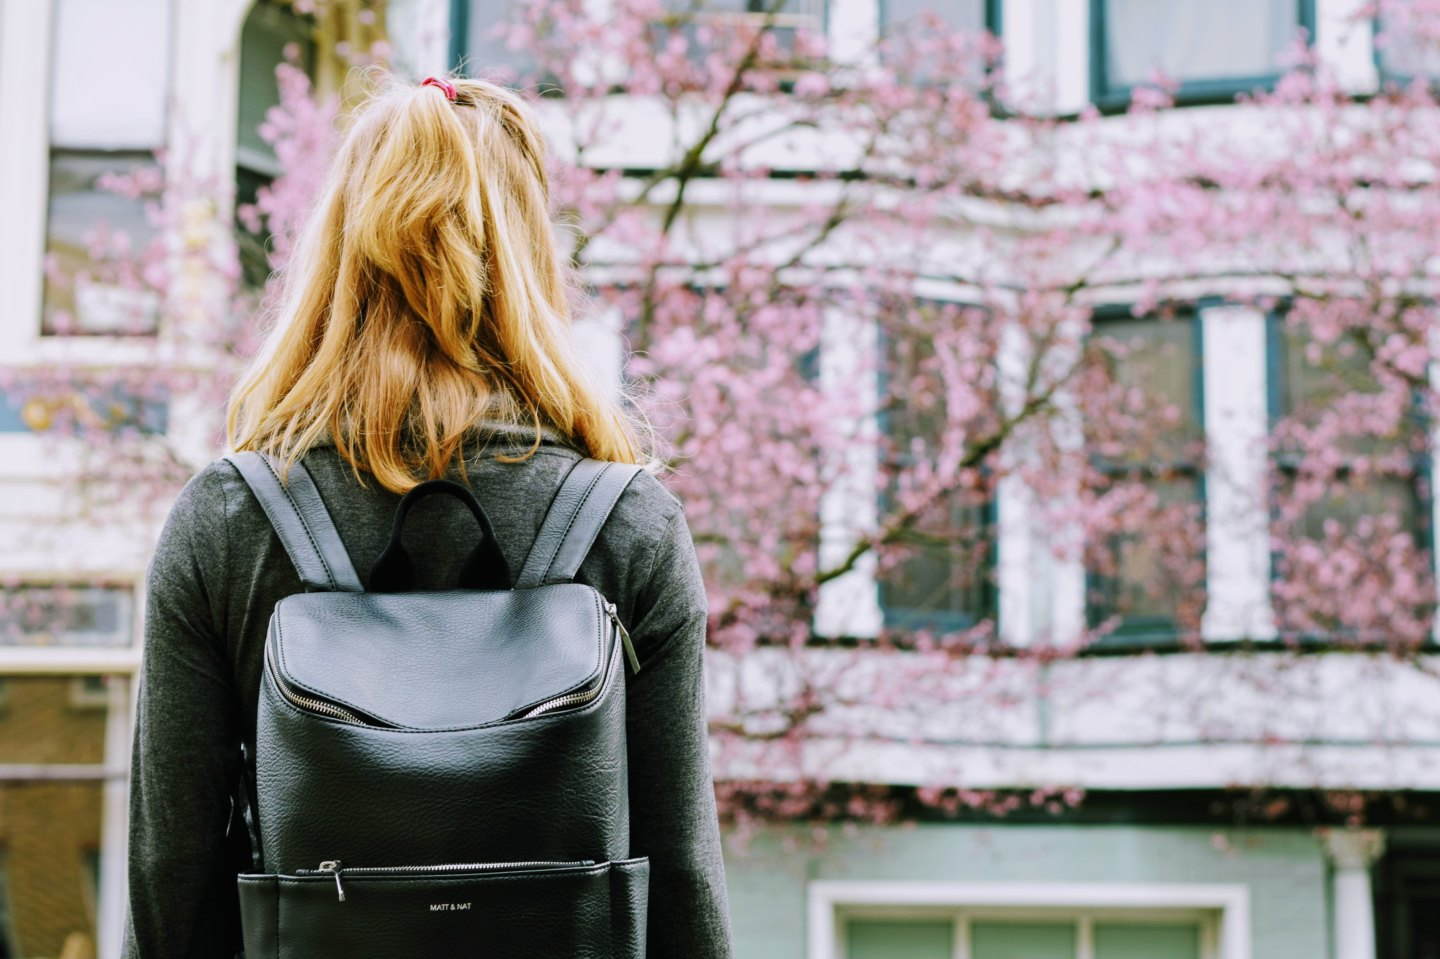 A blonde young woman with her hair in a half pony stands with her back to the camera, a black backpack on her back, looking at flowering cherry blossom trees in front of a white building